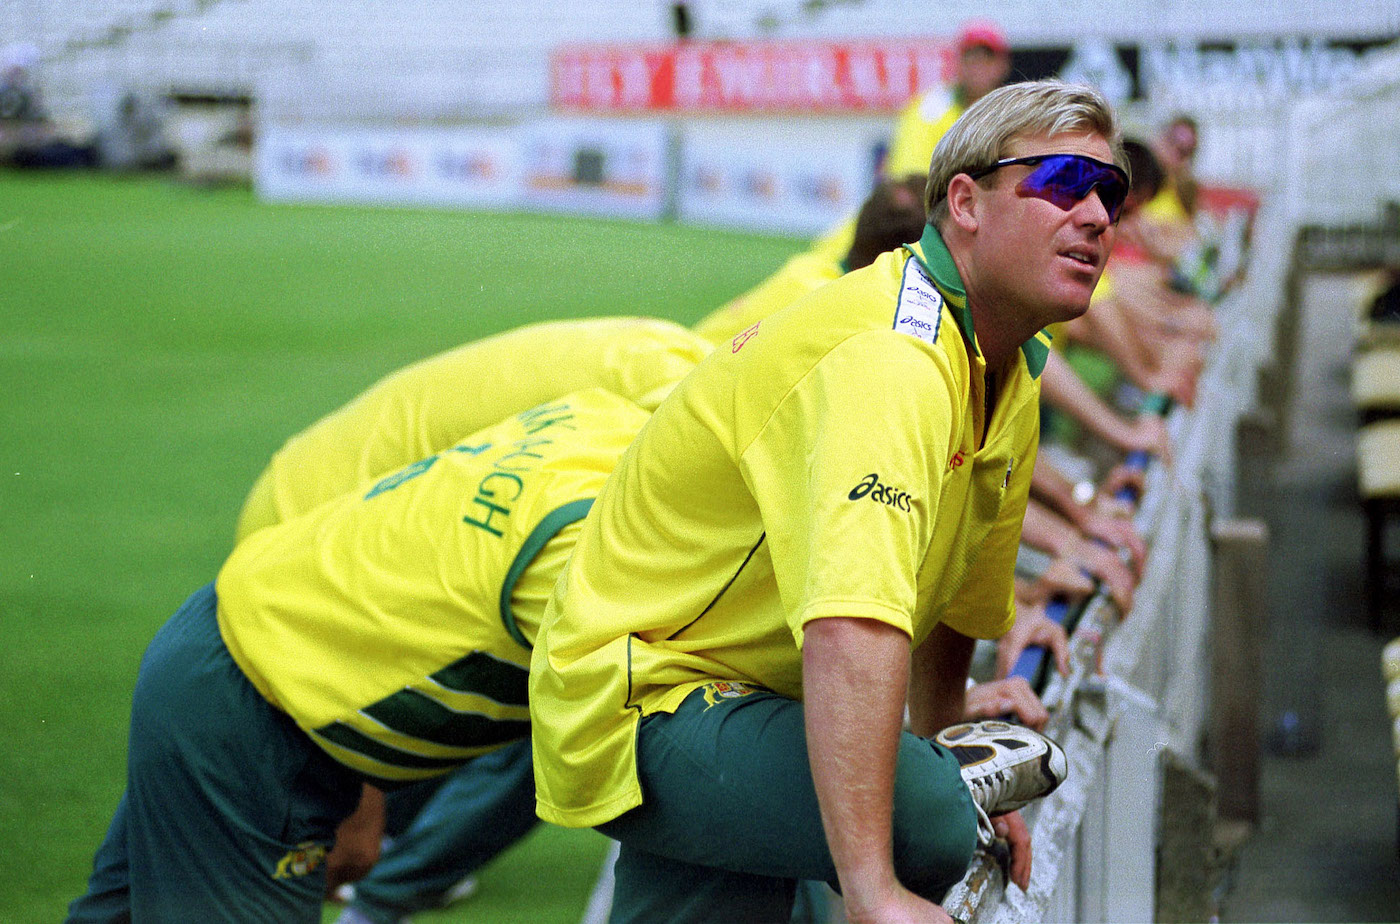 These shades hide my inner turmoil: Warne came into the Super Six stage at his lowest ebb psychologically